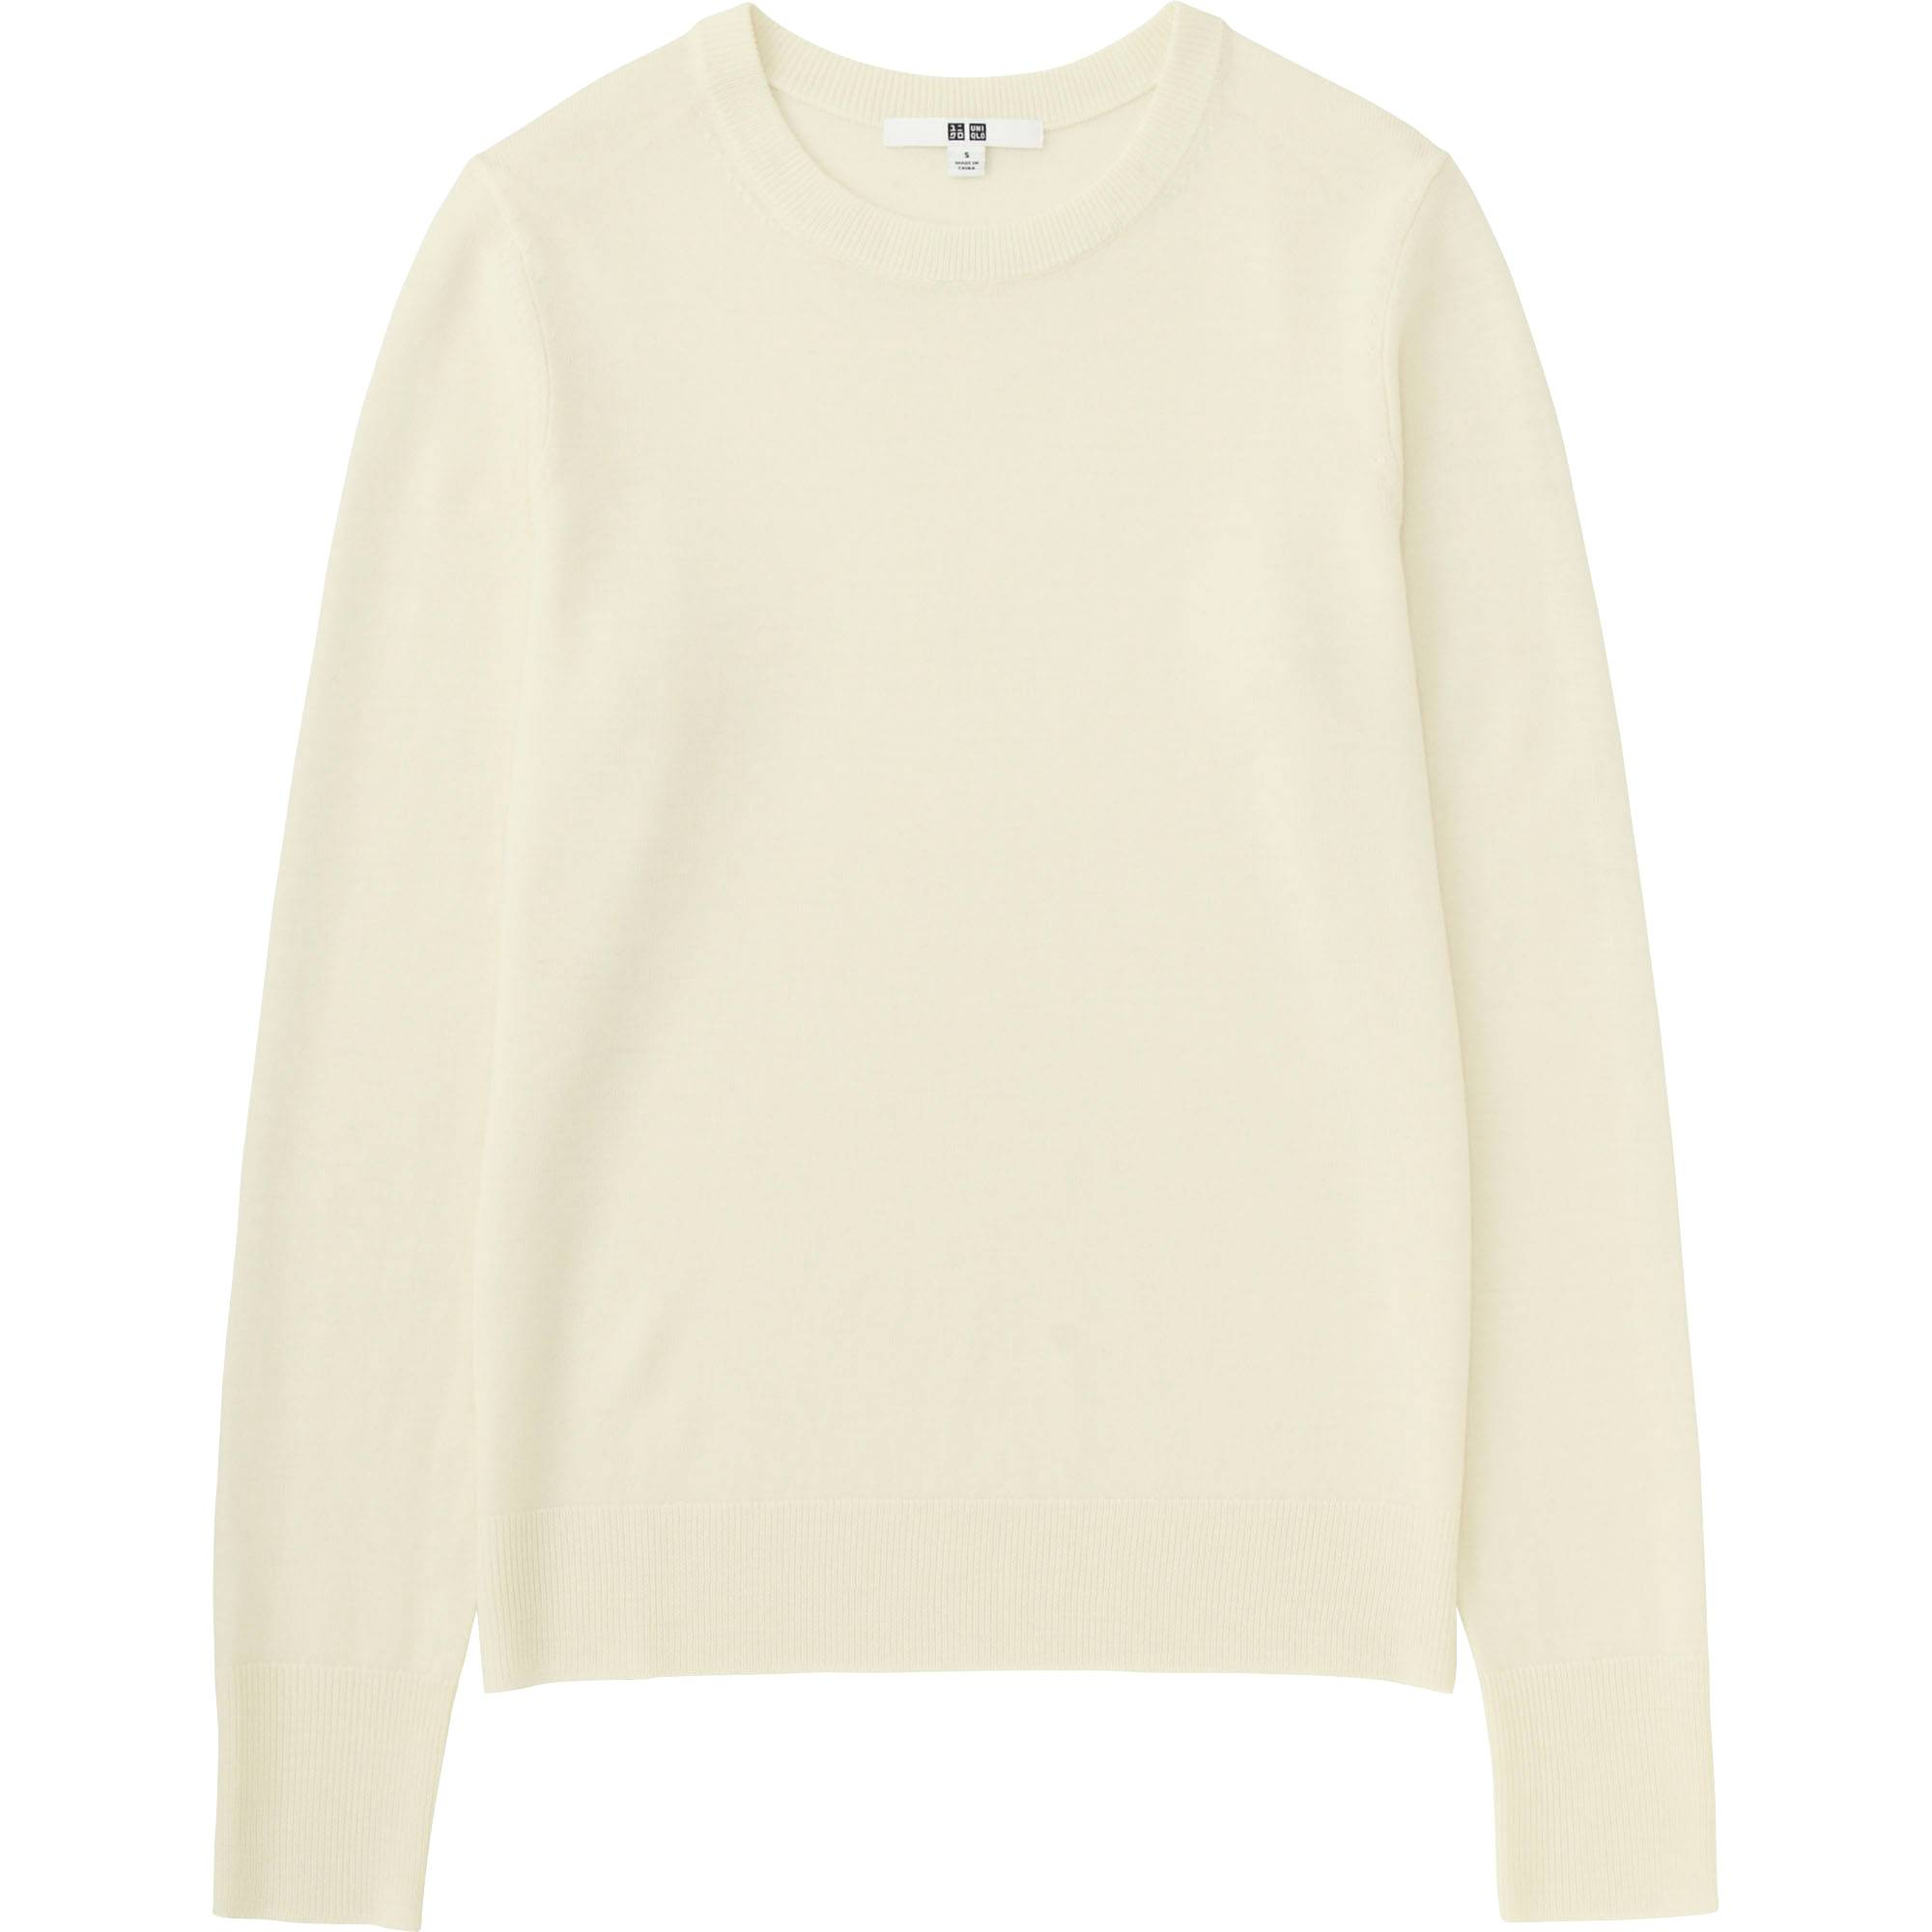 WOMEN EXTRA FINE MERINO CREWNECK SWEATER | UNIQLO US